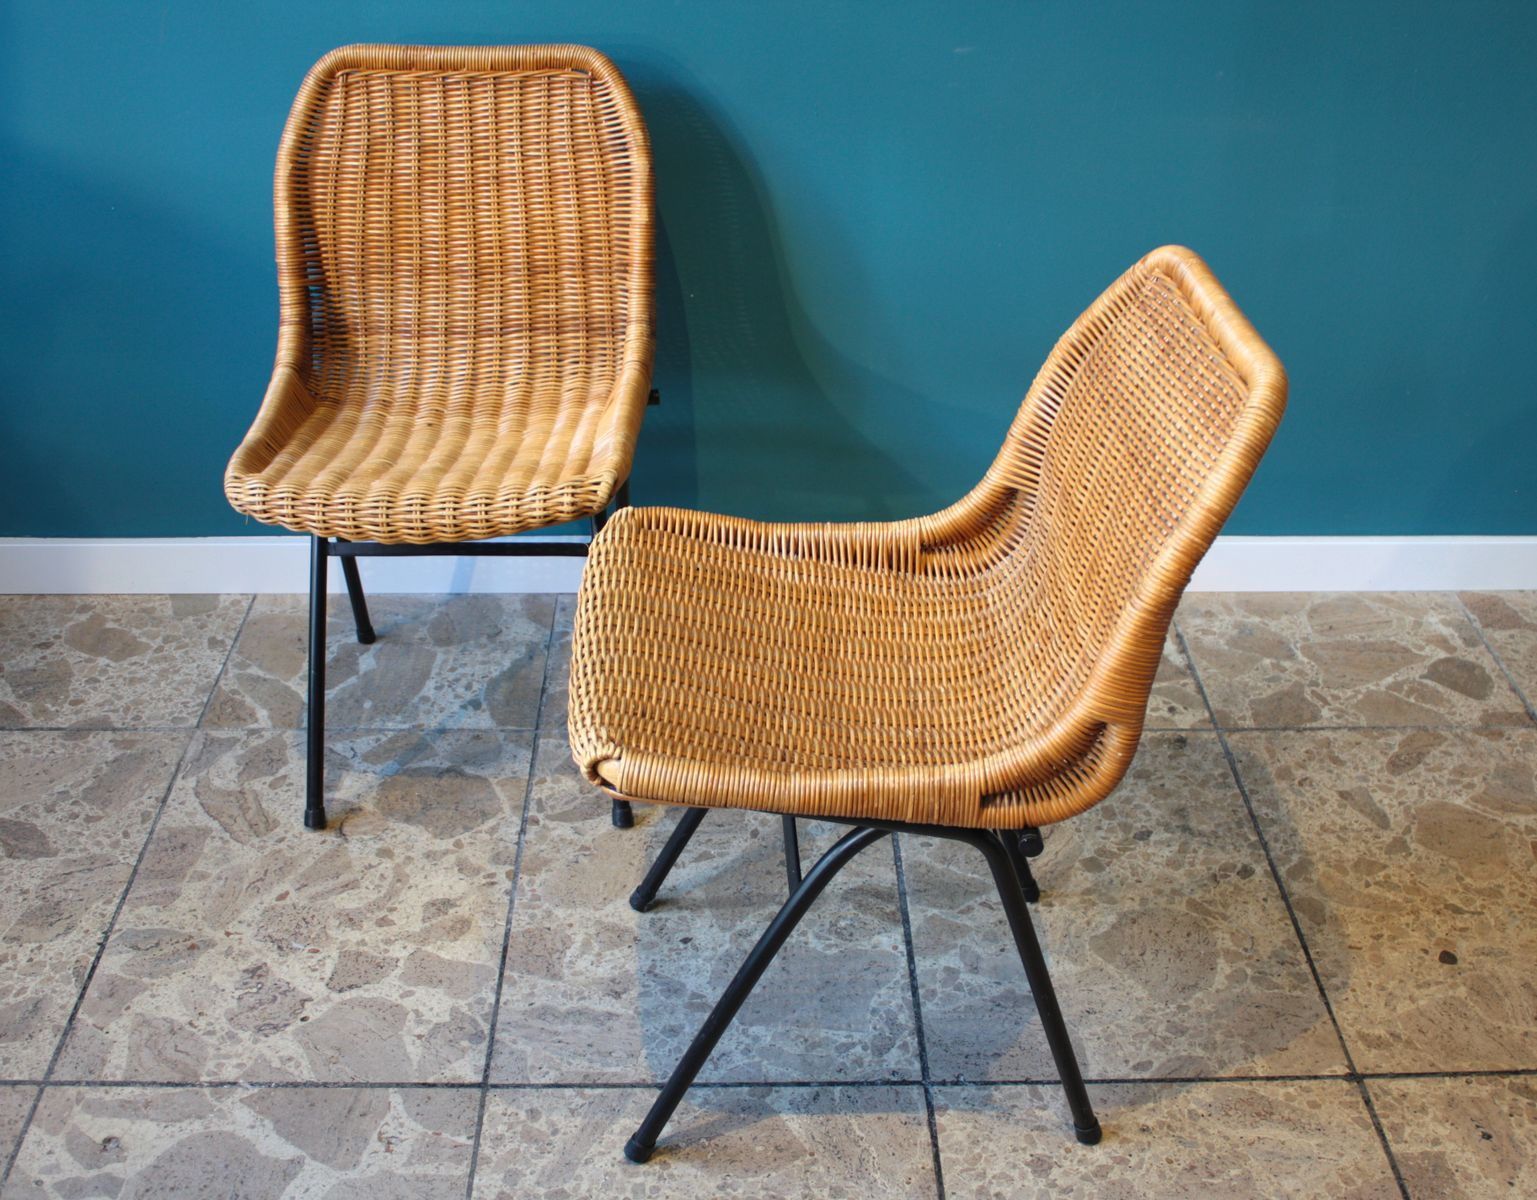 vintage rattan chairs from roh noorwolde set of 2 for sale at pamono. Black Bedroom Furniture Sets. Home Design Ideas